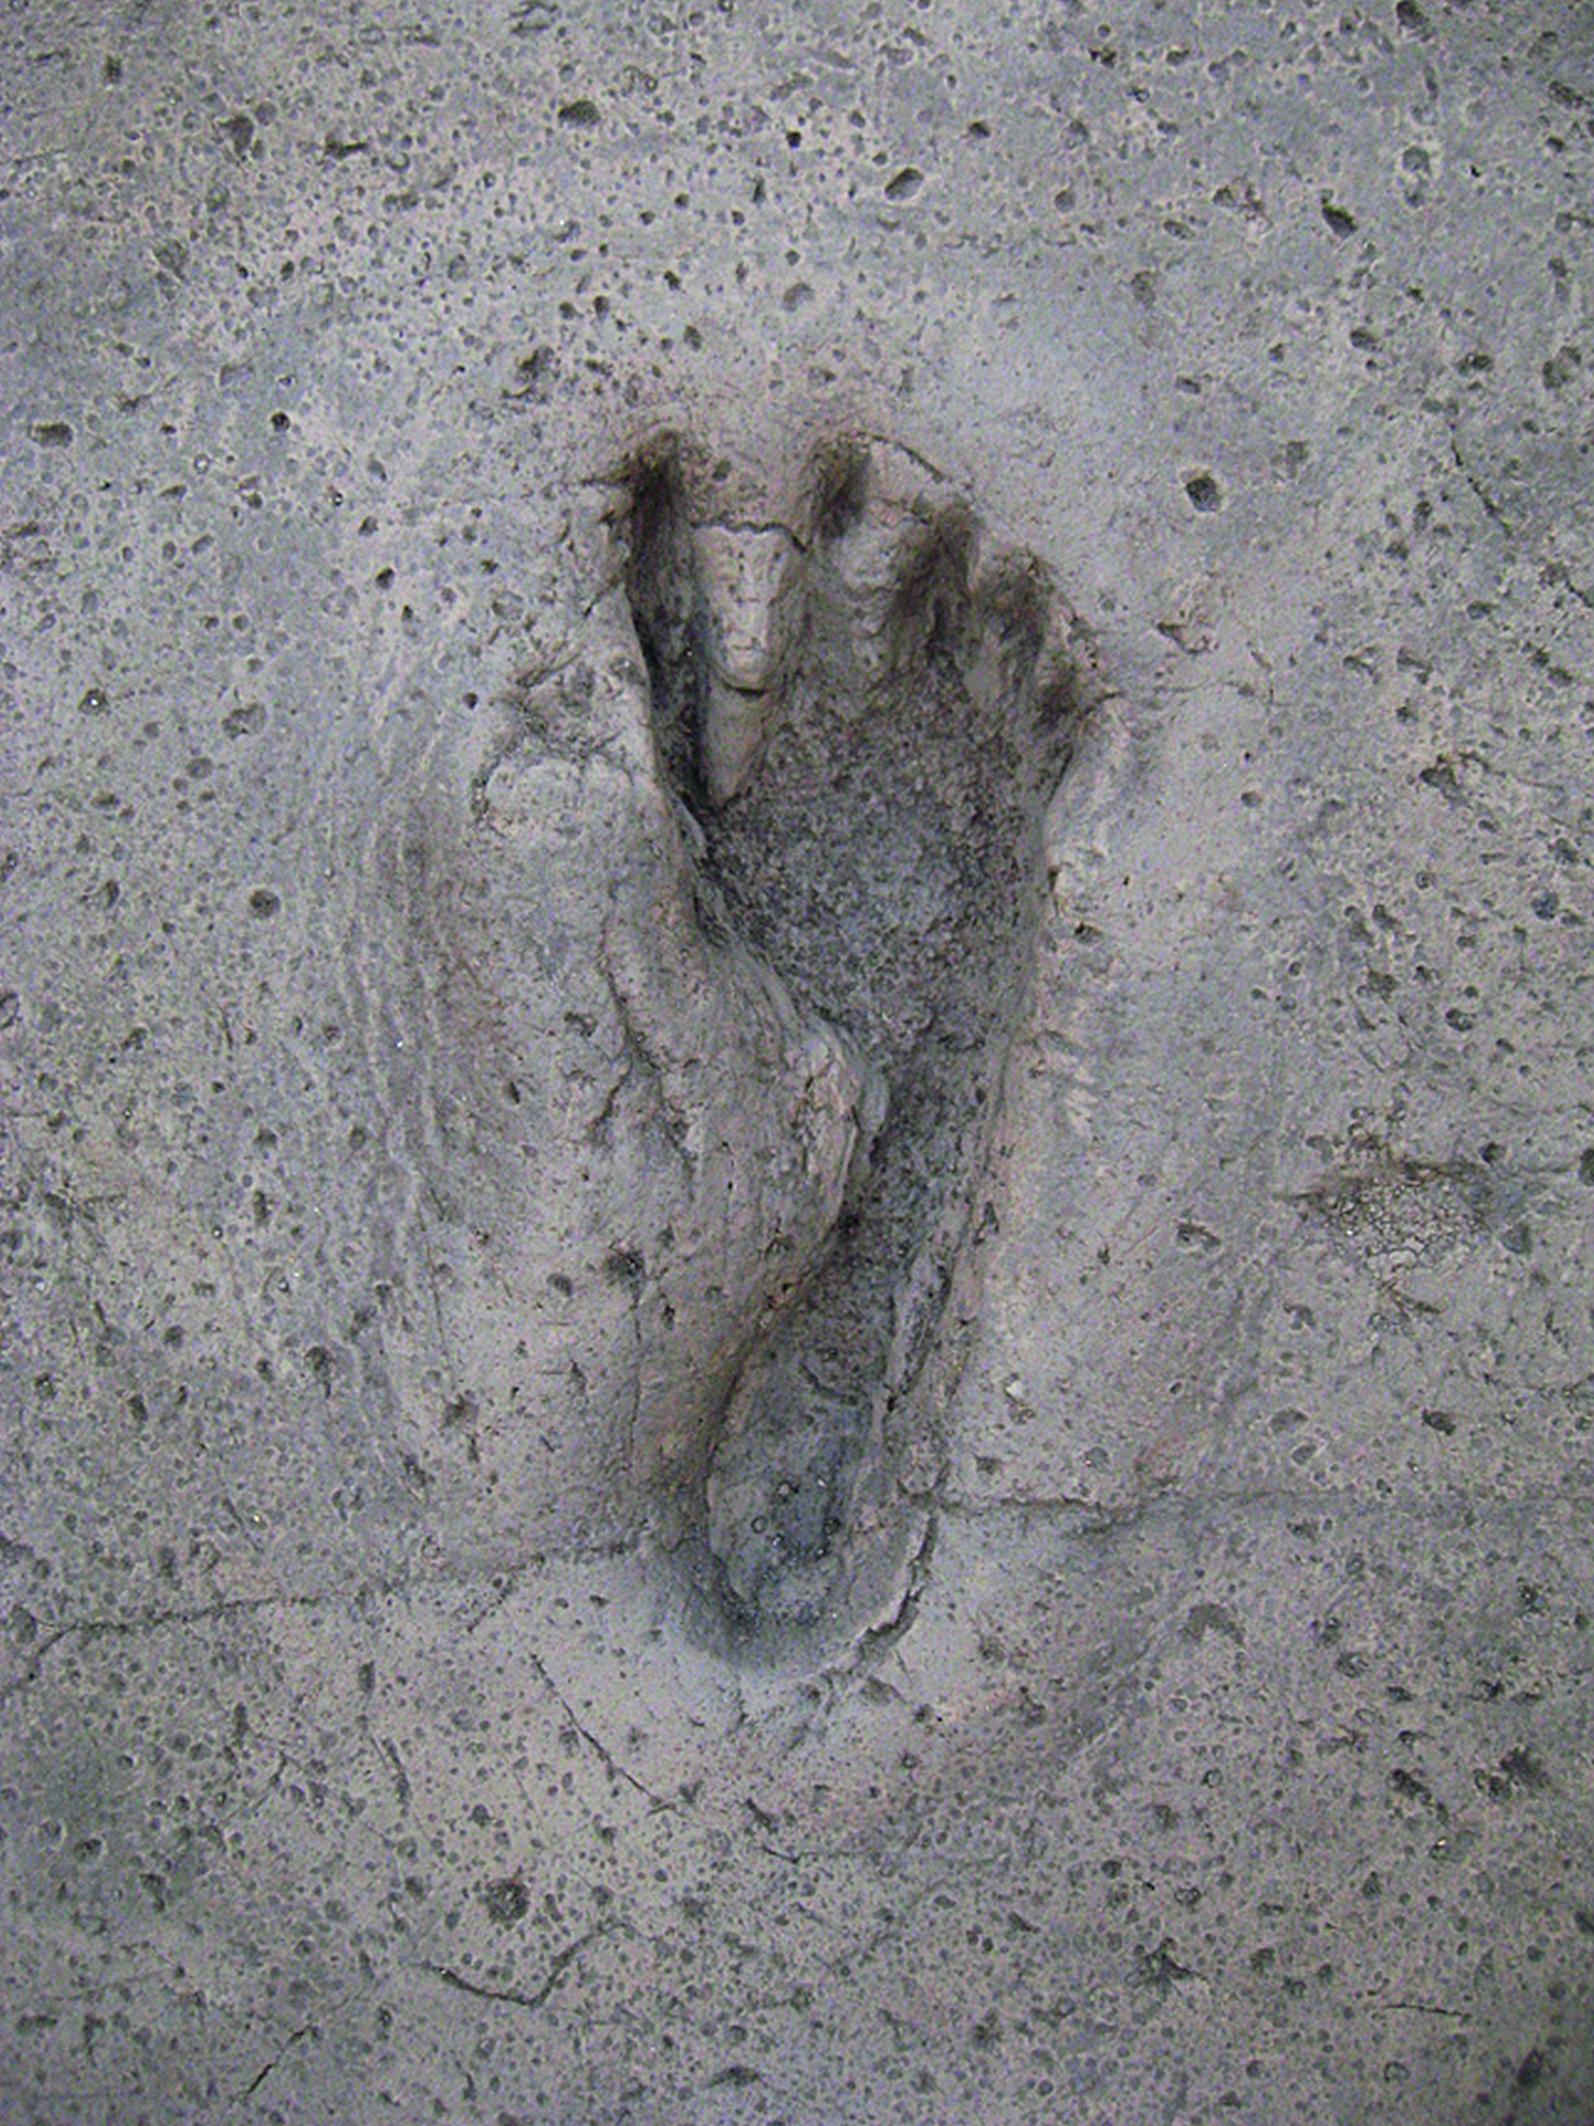 Fig. 4: Detail: The fleeing inhabitants of Nola-Palma Campania have left their footprints in the ash during the prehistoric eruption (Photo © Soprintendenza Speciale per i Beni Archeologici di Napoli e Pompei, N. Castaldo)